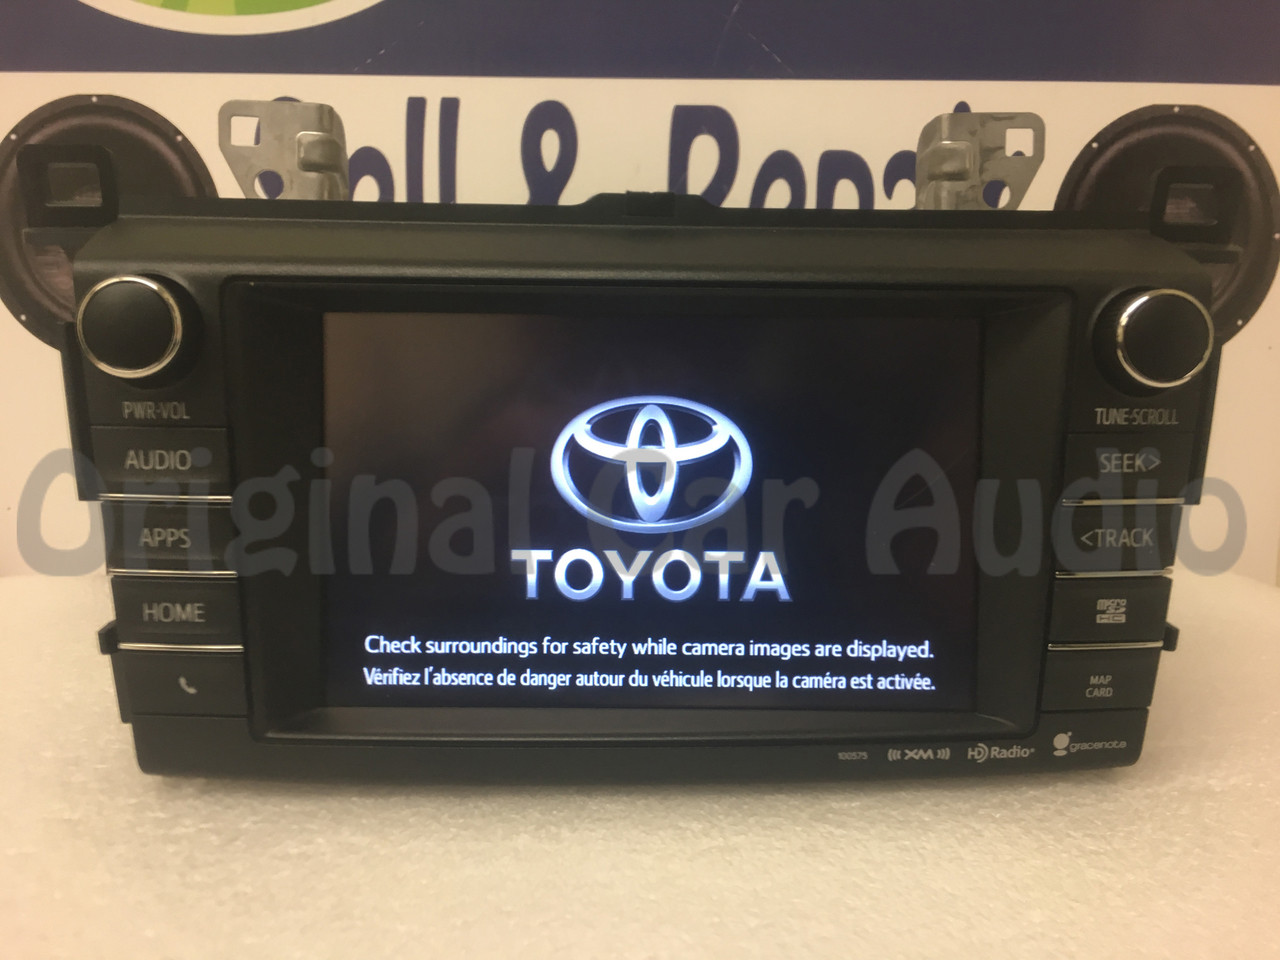 Radio For Toyota Rav4 2006 2007 2011 Toyota Camry Aurion Car furthermore Sale 1094455 Pal Ntsc Dual Ir 7 Inch Hd Led Exclusive Toyota Headrest Dvd Player Monitor With Pillow Honda together with 2013 2016 Toyota Rav4 Oem Entune Navigation Gracenote Sat Hd Radio Cd Player Receiver 100575 in addition Funwi ec likewise Sale 1094452 8 Inch Hd Led Two Way Av Wired Game Joysticks Fit Toyota Headrest Dvd Player Monitor With Pillow. on toyota rav4 2013 oem factory radio car dvd player